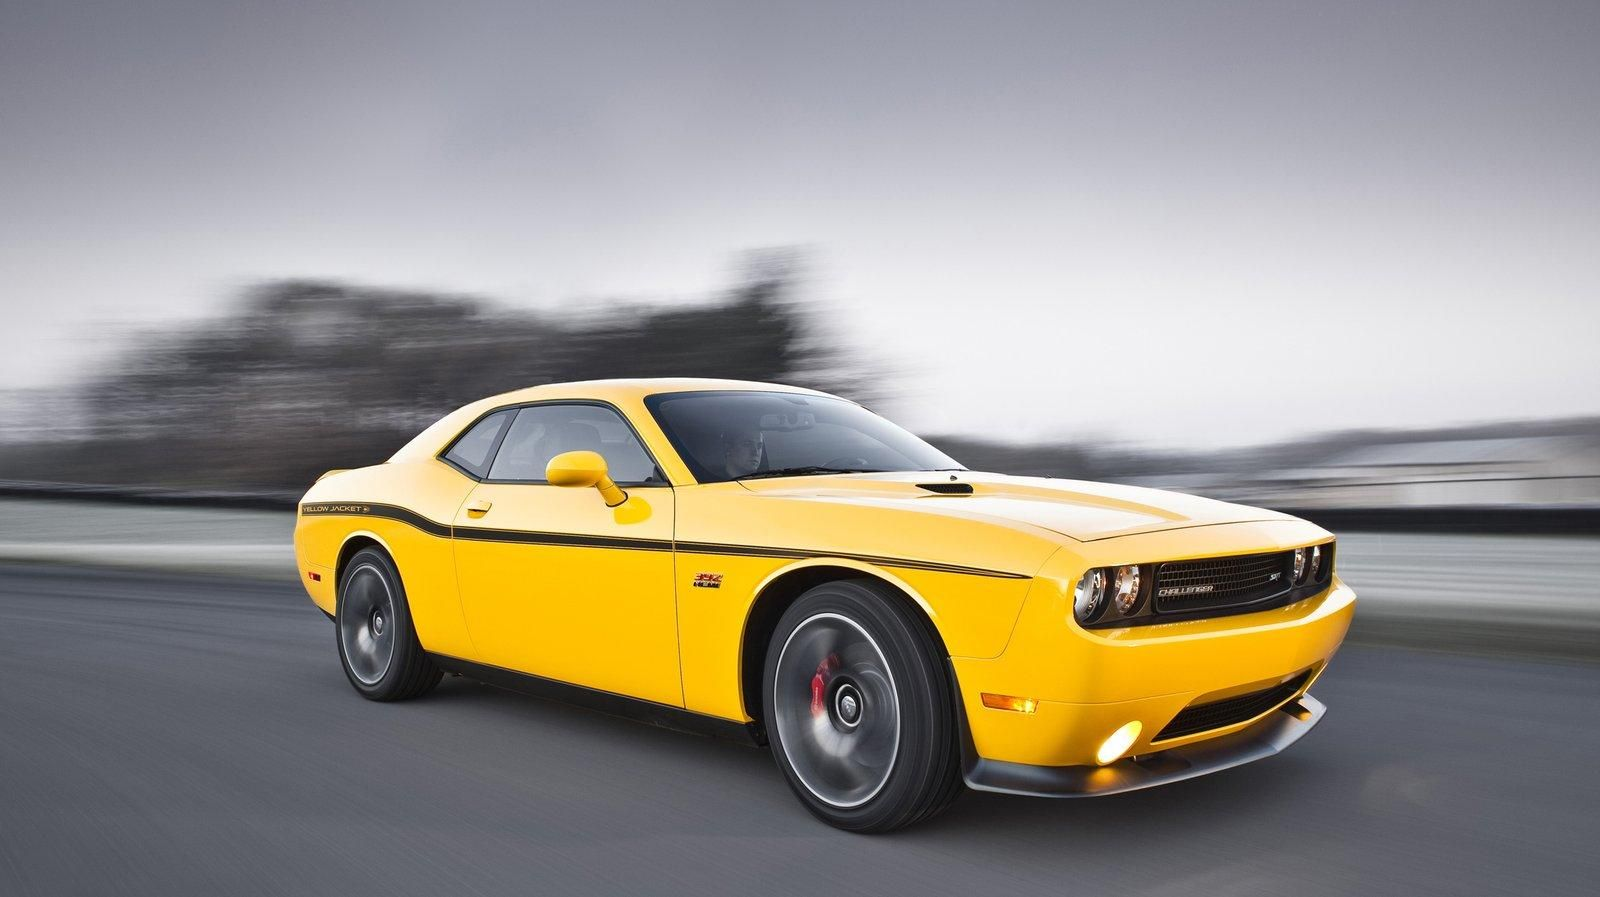 Read on to learn more on the 2012 dodge charger super bee and dodge challenger 392 yellow jacket set to debut at the 2011 los angeles auto show brought to